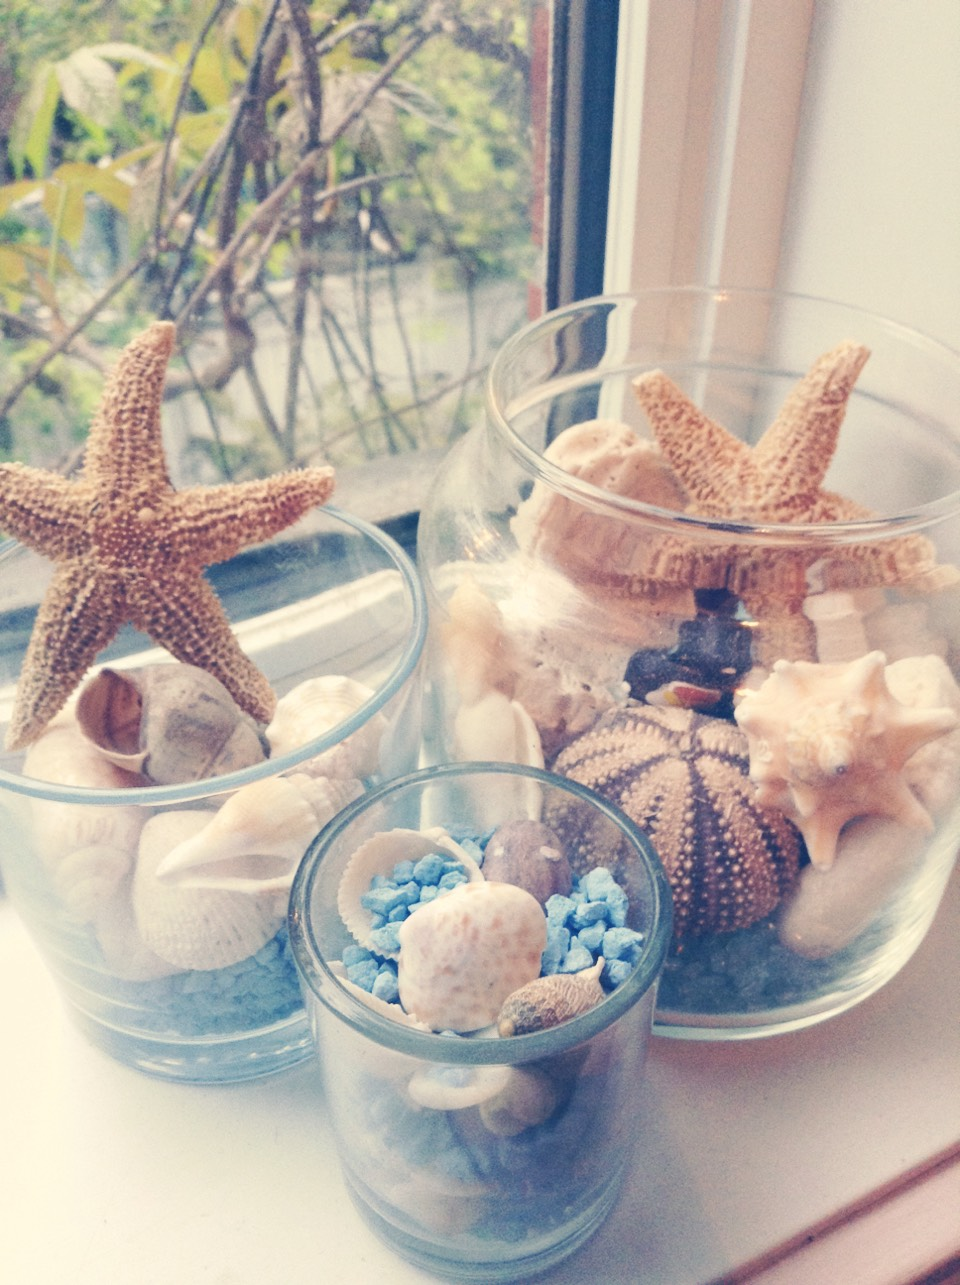 For those one I took :  Some jars Rocks Shells Starfish